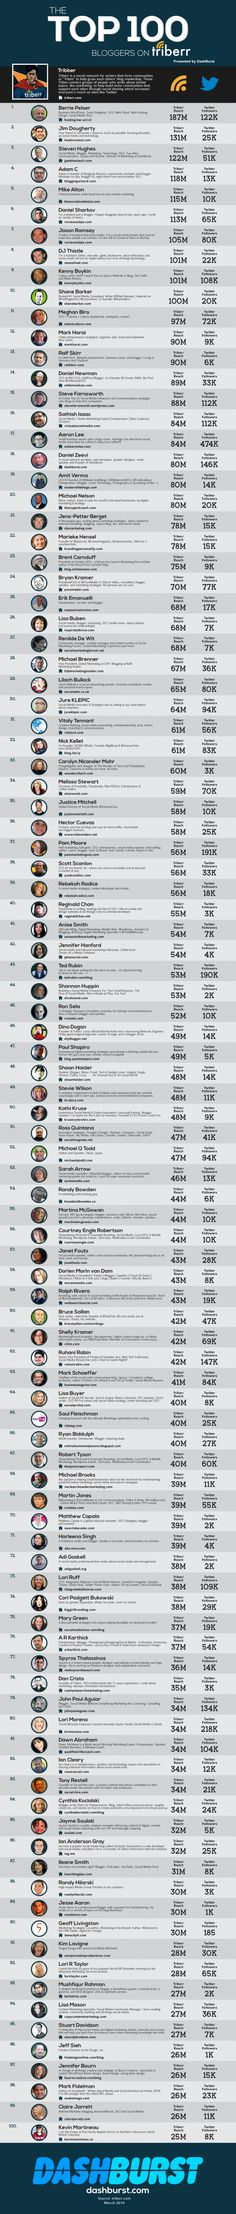 The Top 100 Bloggers on Triberr [INFOGRAPHIC]  #thewisesage The Wise Sage  #blog Blog